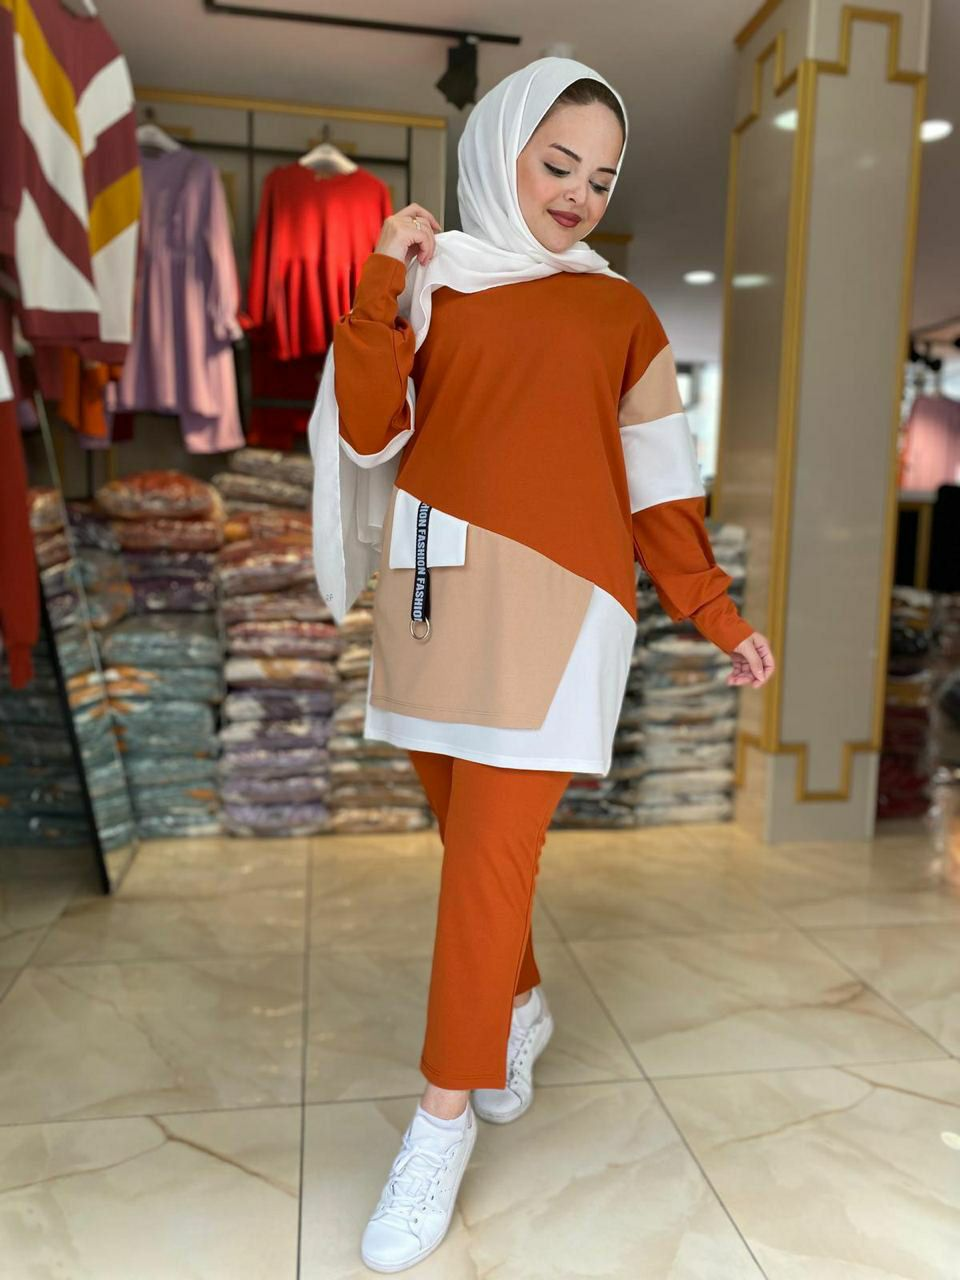 Survette femme longue made Turquie Manar, Orange, 42